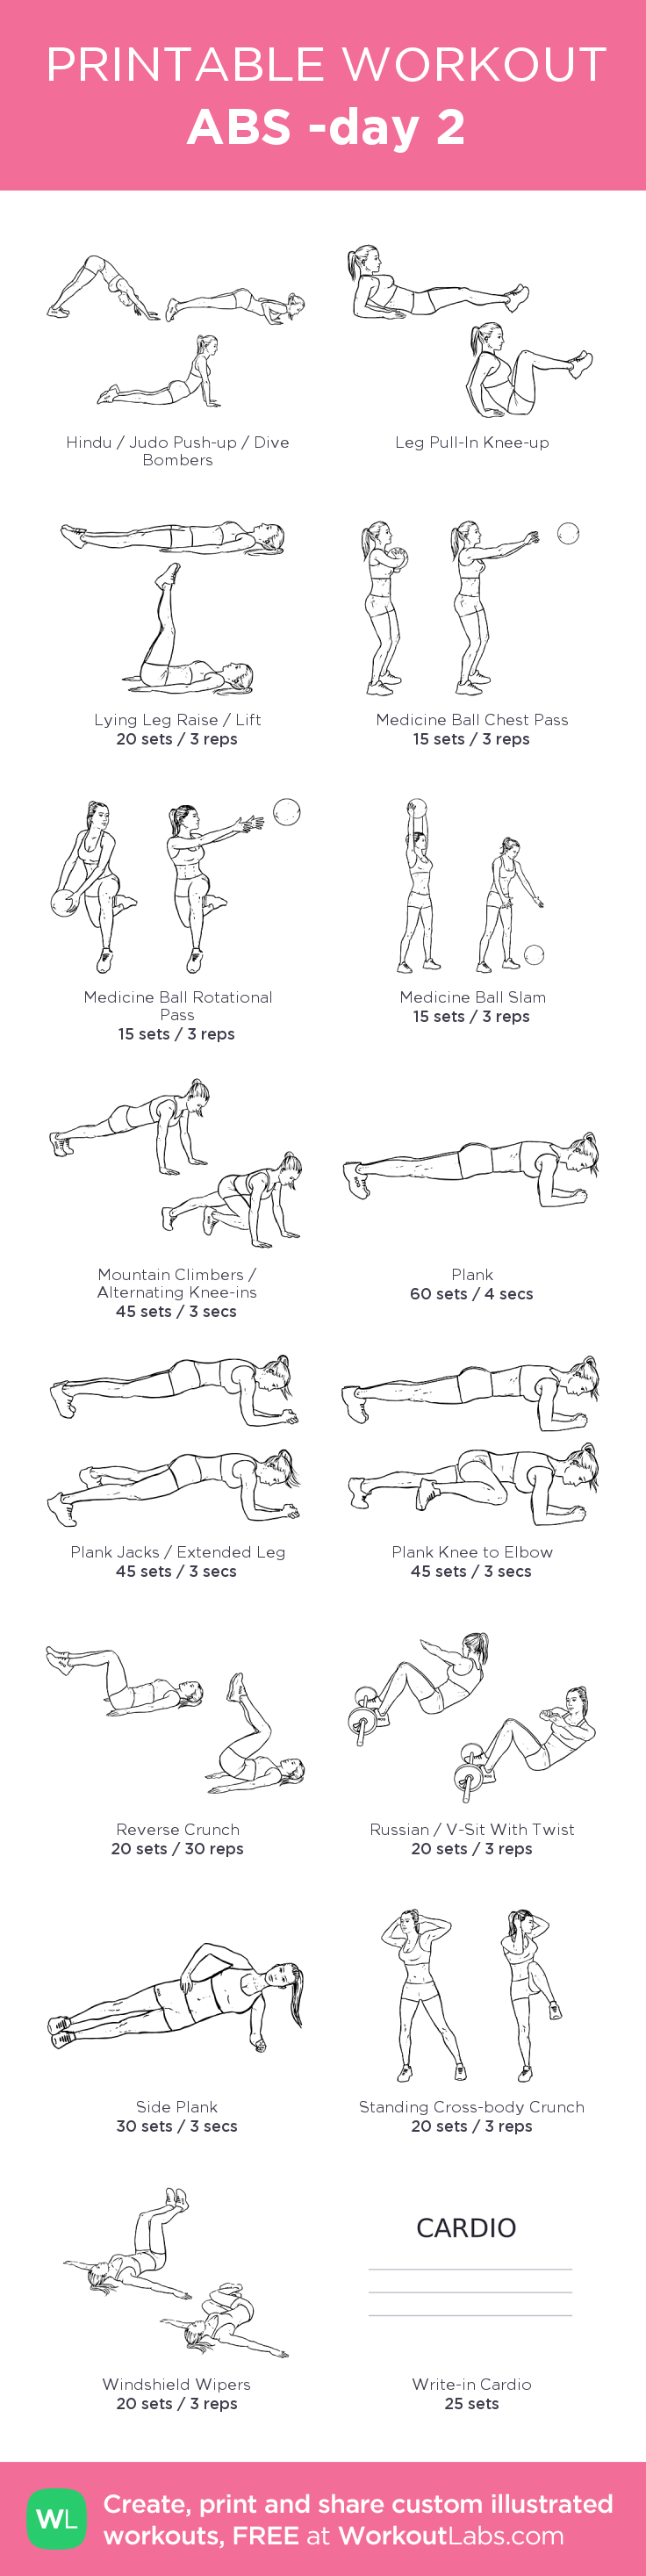 ABS -day 2: my visual workout created at WorkoutLabs.com • Click through to customize and download as a FREE PDF! #customworkout